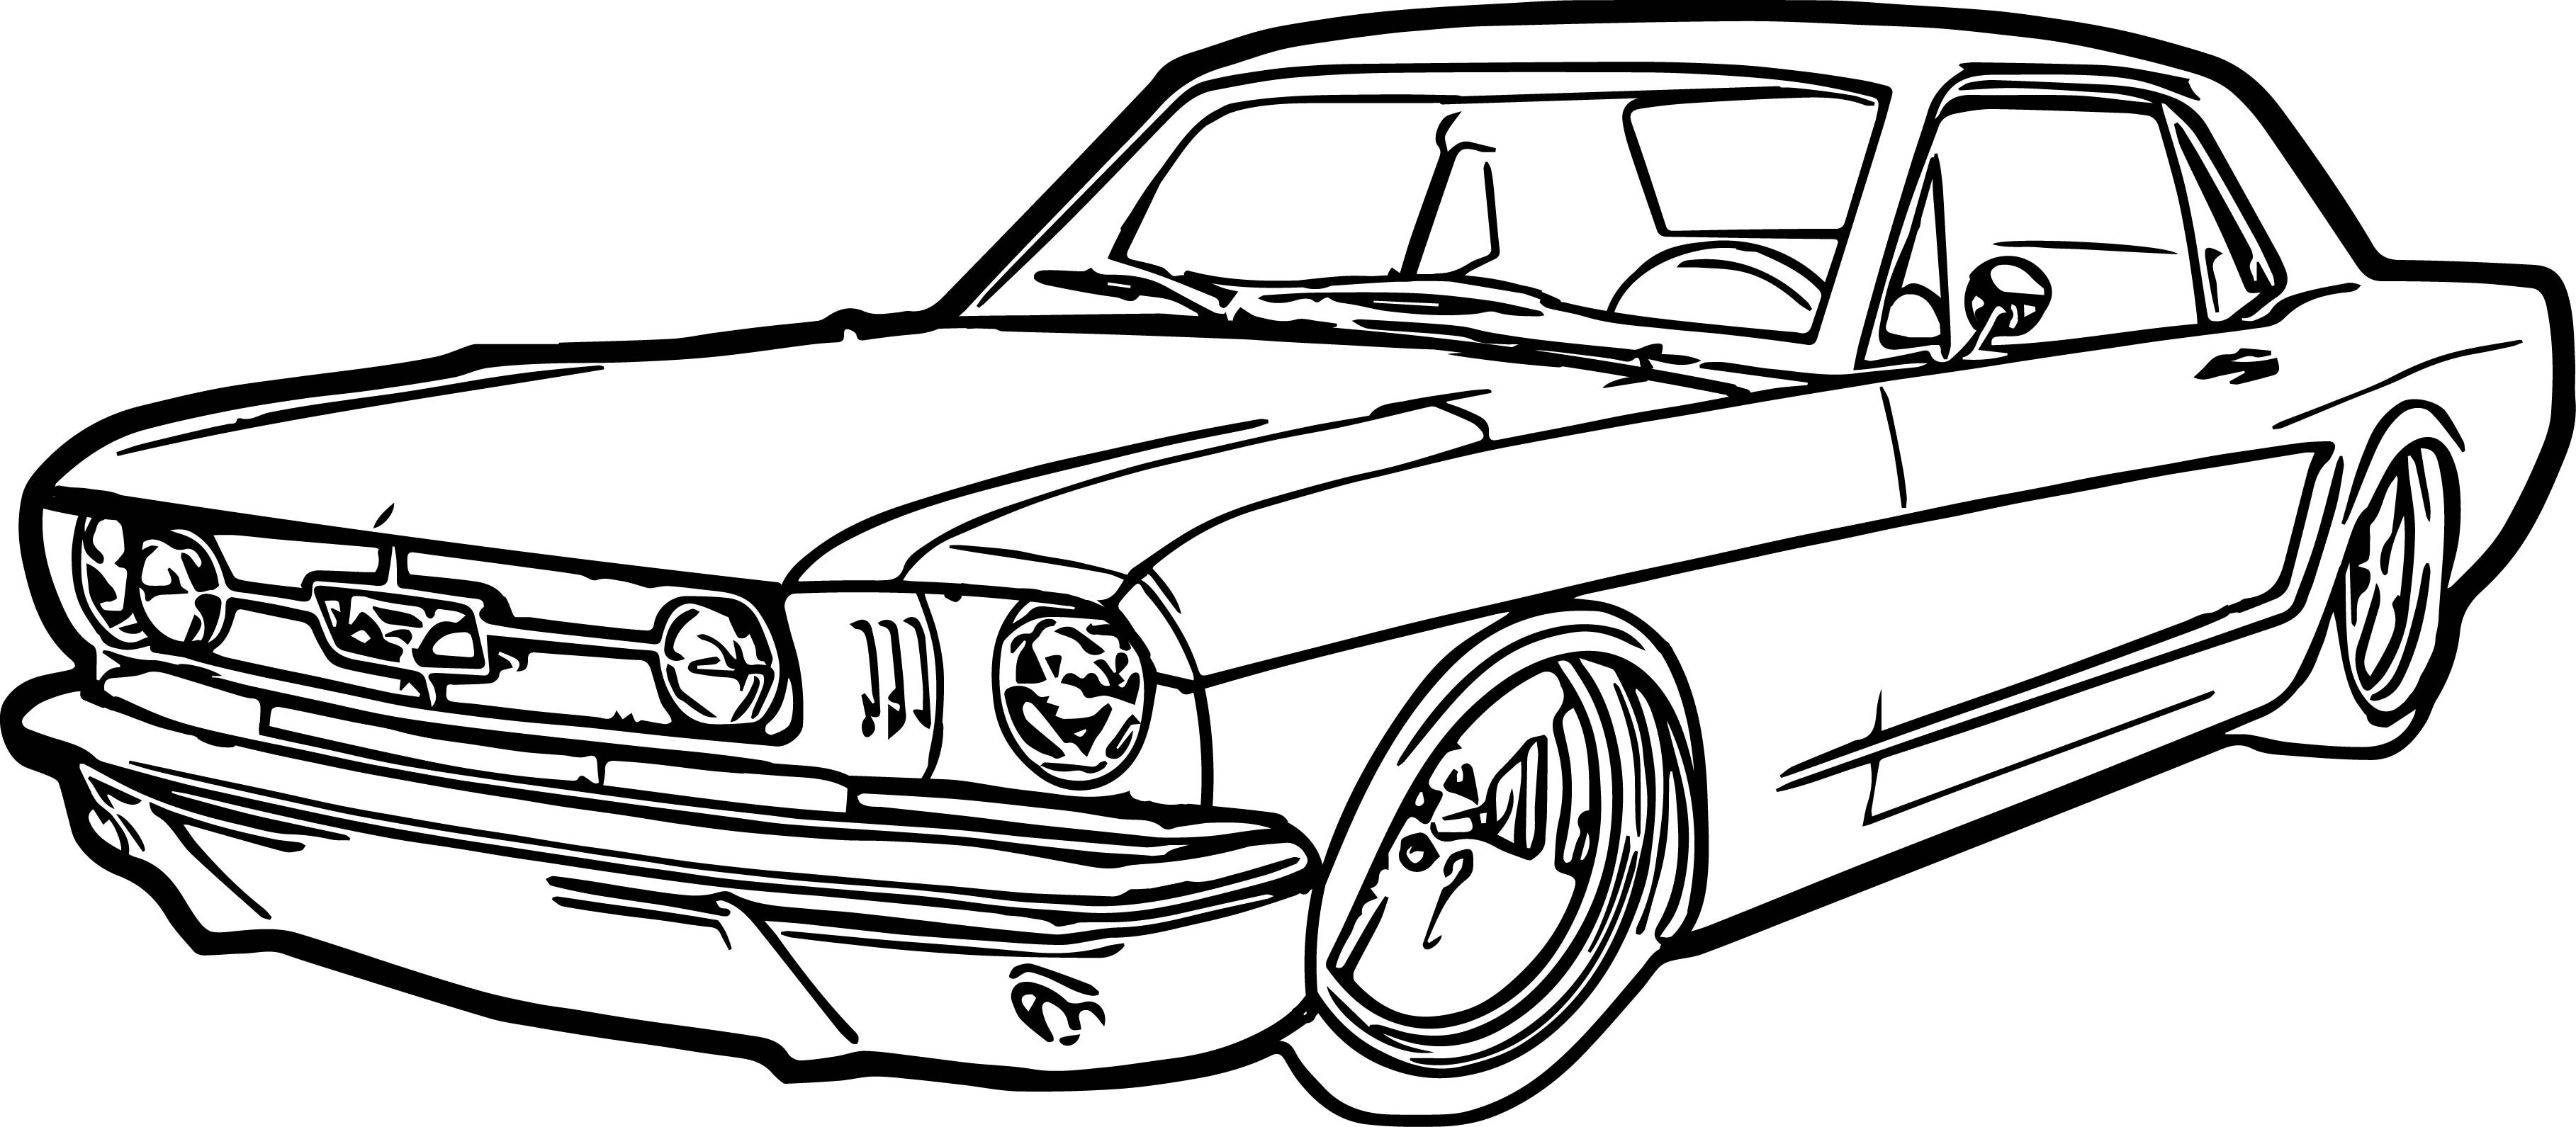 3635x1591 Classic Muscle Car Coloring Pages Lovely Modest Design Mustang